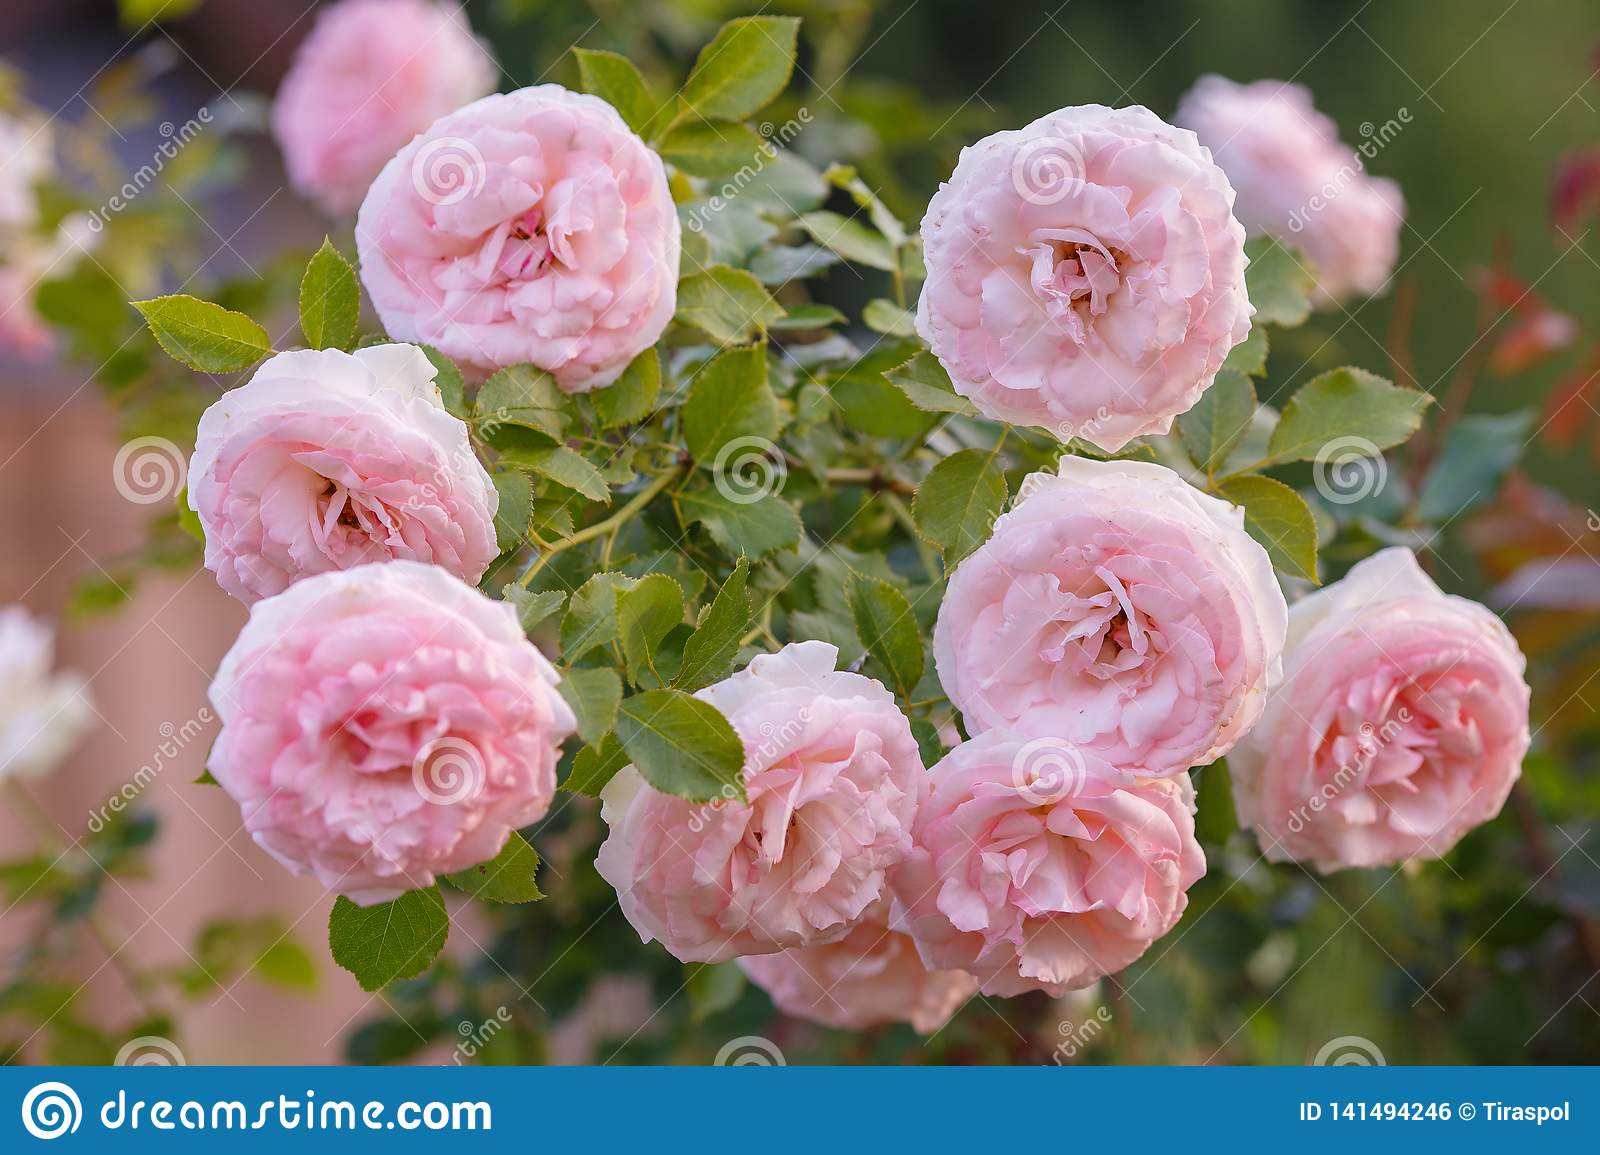 Flowers Of Pink Roses On The Bush As A Bouquet Cream Pink Rose Pierre De Ronsard Stock Photo Image Of Blossoming Aroma 141494246